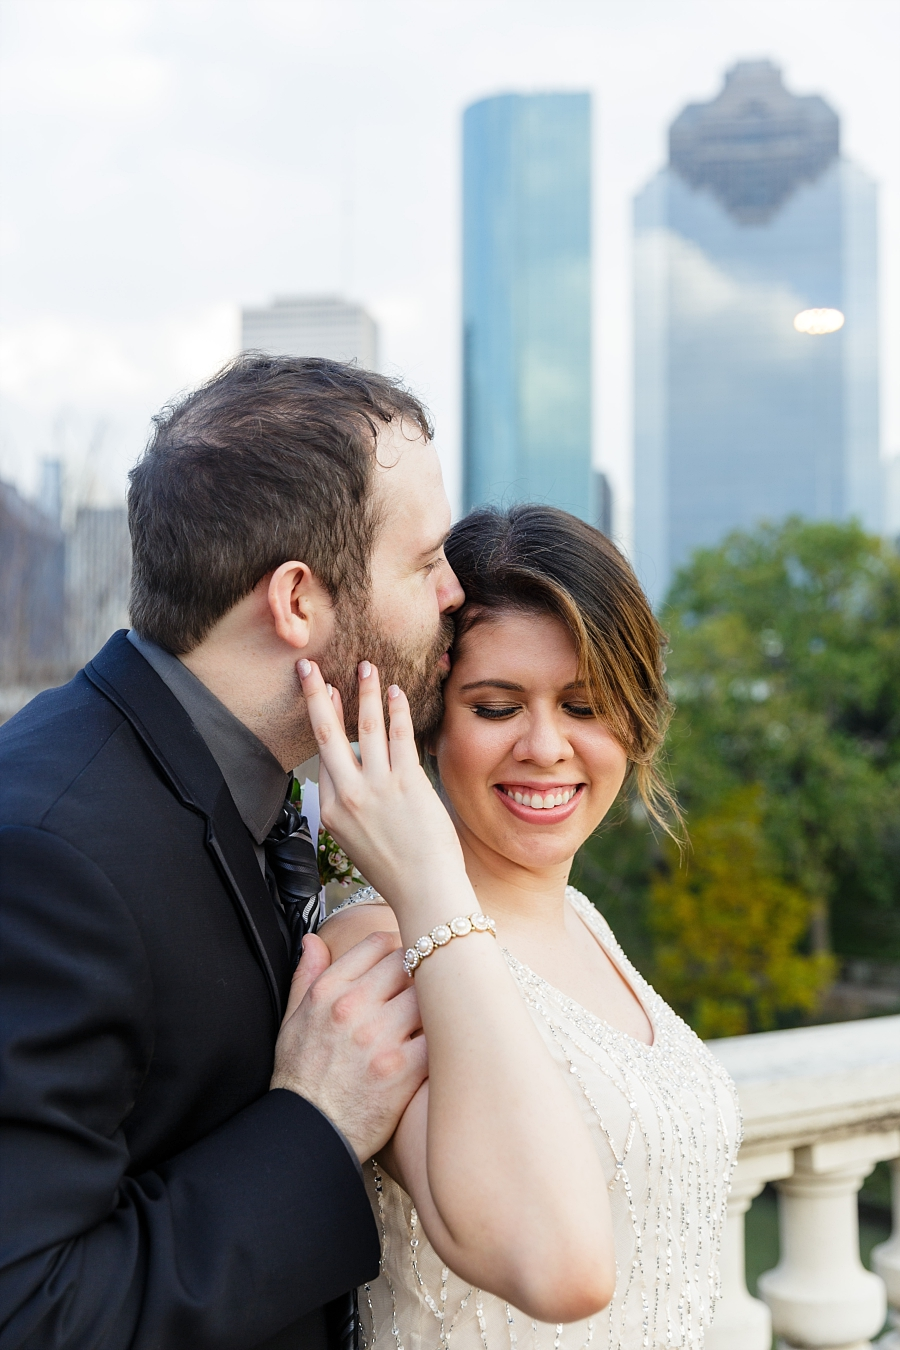 Stacy-Anderson-Photography-Houston-Courthouse-Vic-Anthony-Wedding-Photographer_0011.jpg